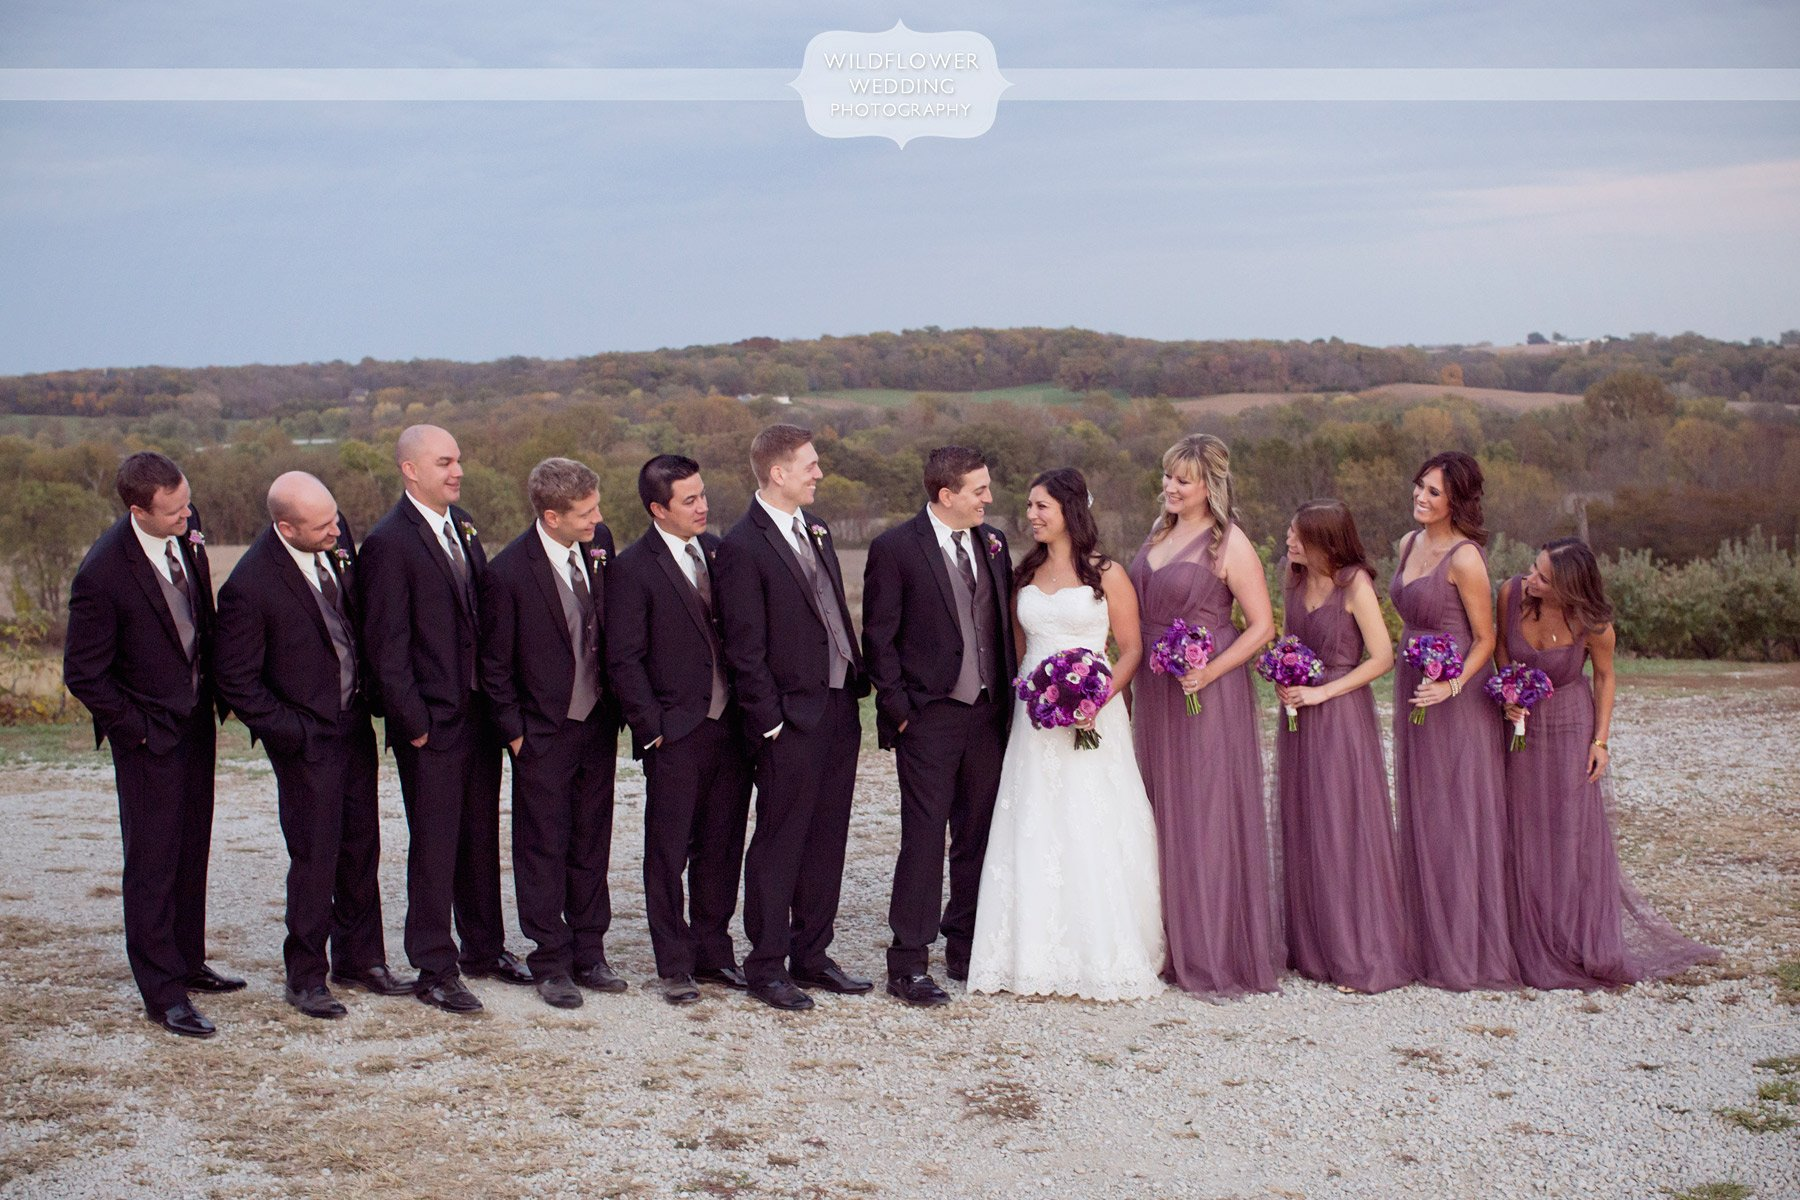 weston-red-barn-wedding-kc-mo-39